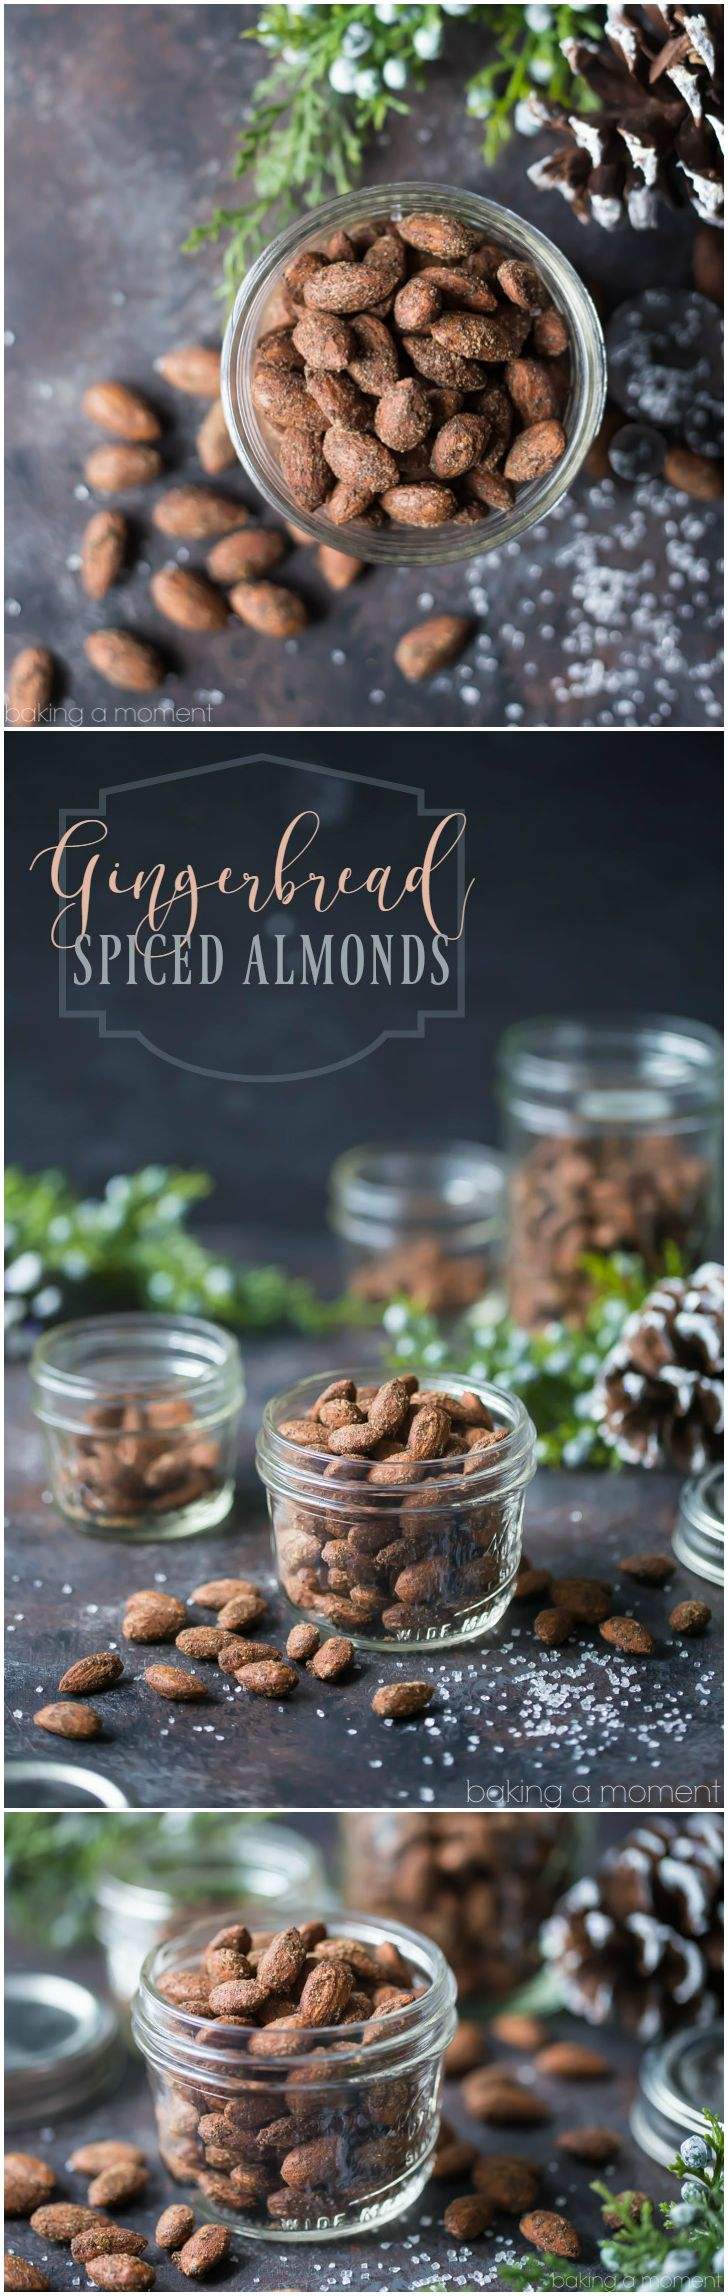 Gingerbread Spiced Almonds: these made a perfect last-minute holiday gift! Whipped up a big batch in just a few minutes, baked them off, and put them into pretty jars tied with ribbon. Tasted just like a gingerbread cookie!